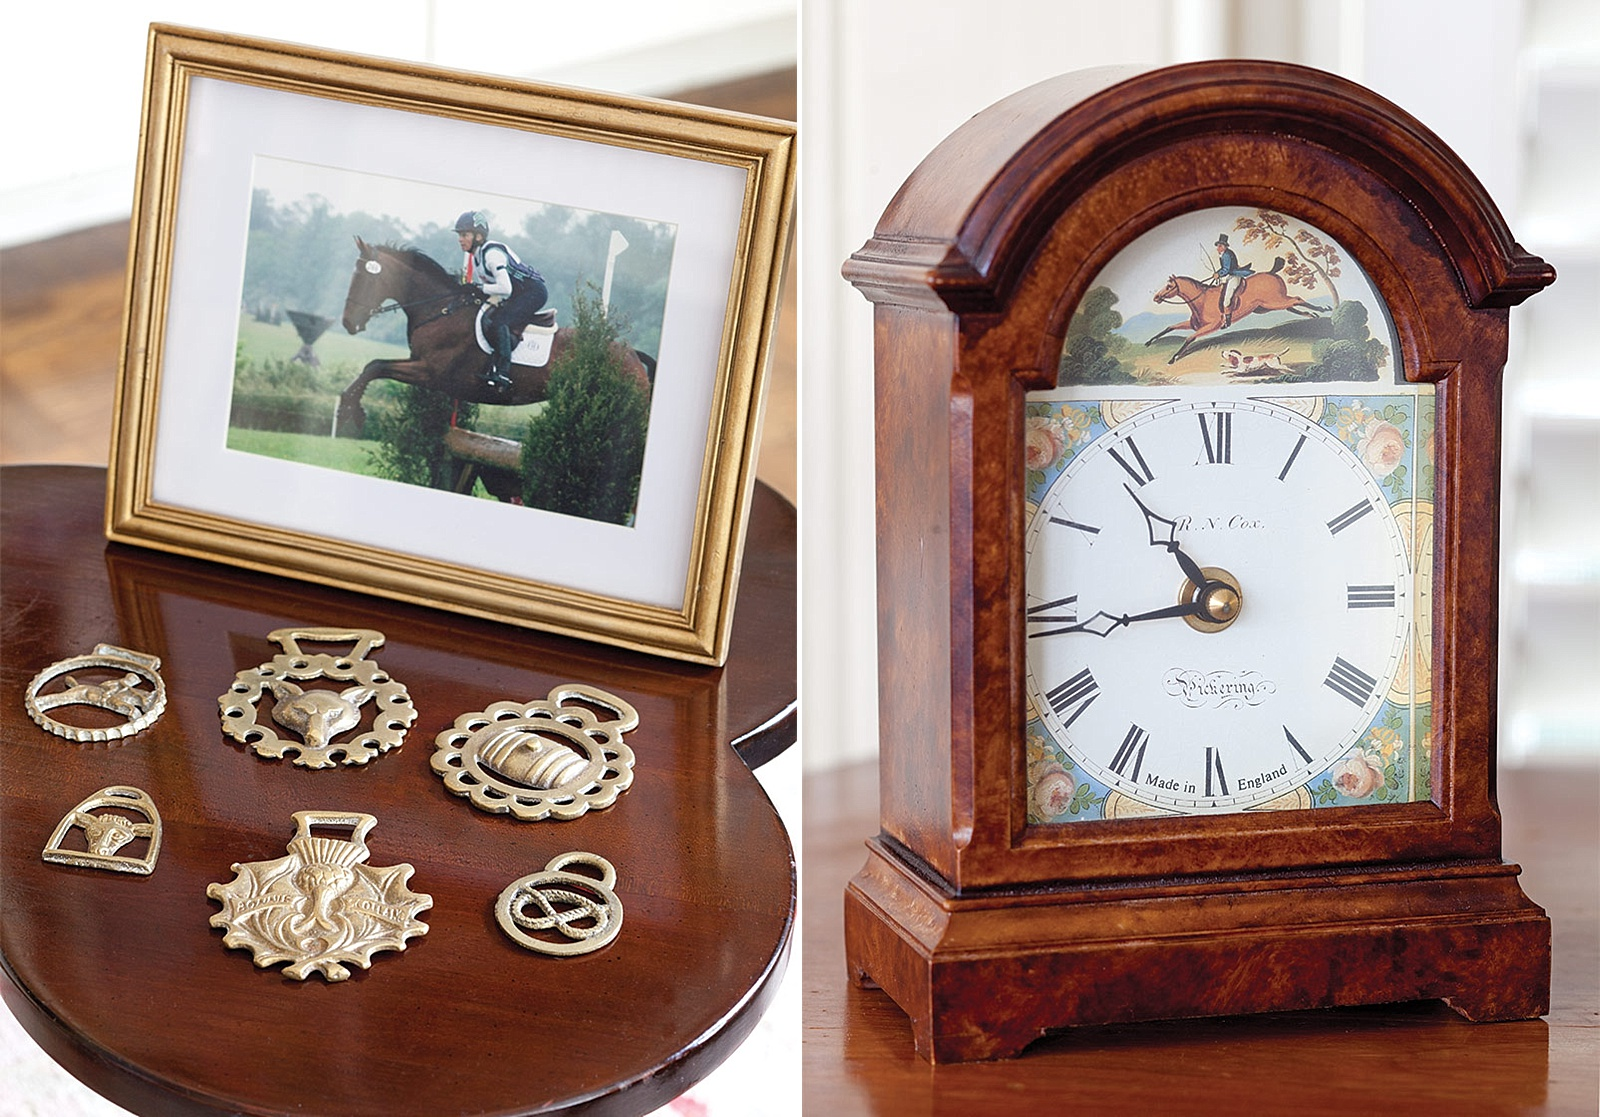 Charming Cottage of Equestrian Collectibles